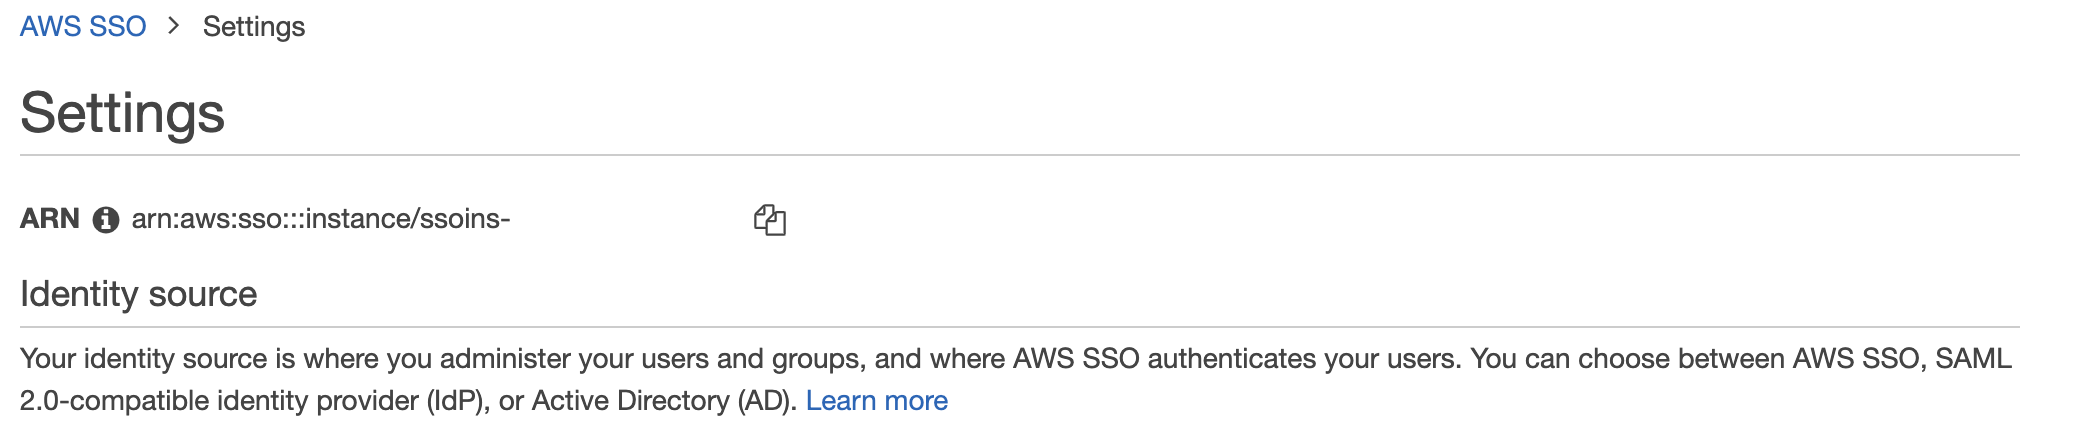 Figure 2: AWS SSO ID ARN